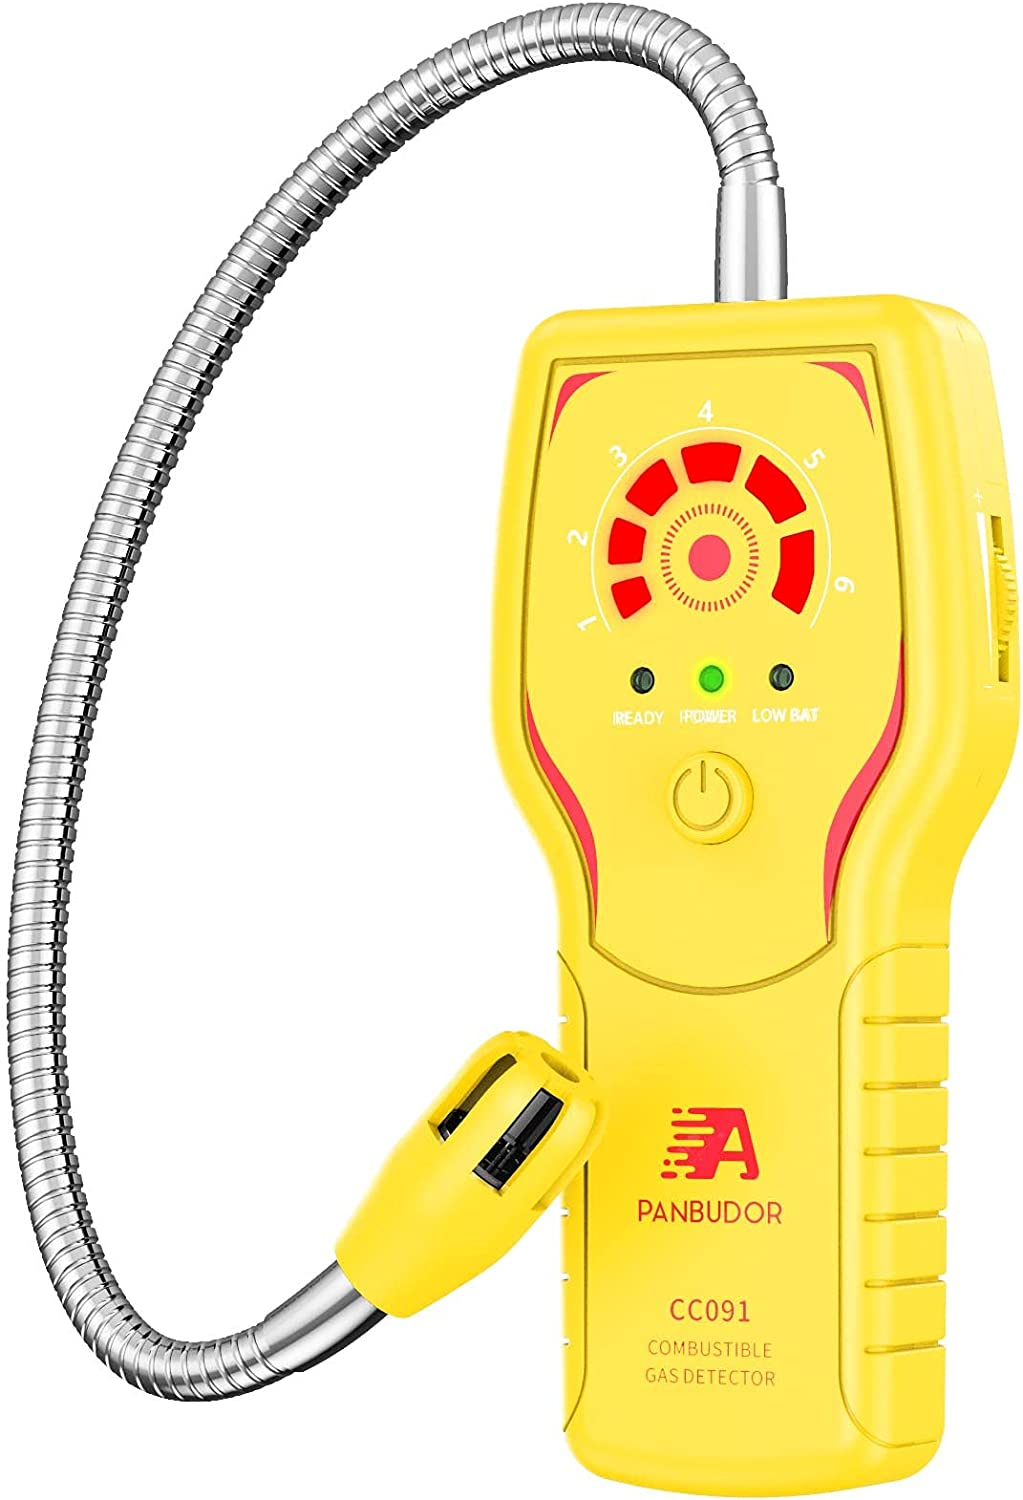 lowest price Natural Gas Leak Detector and Methane CC091 Portable Co Propane 2021 model